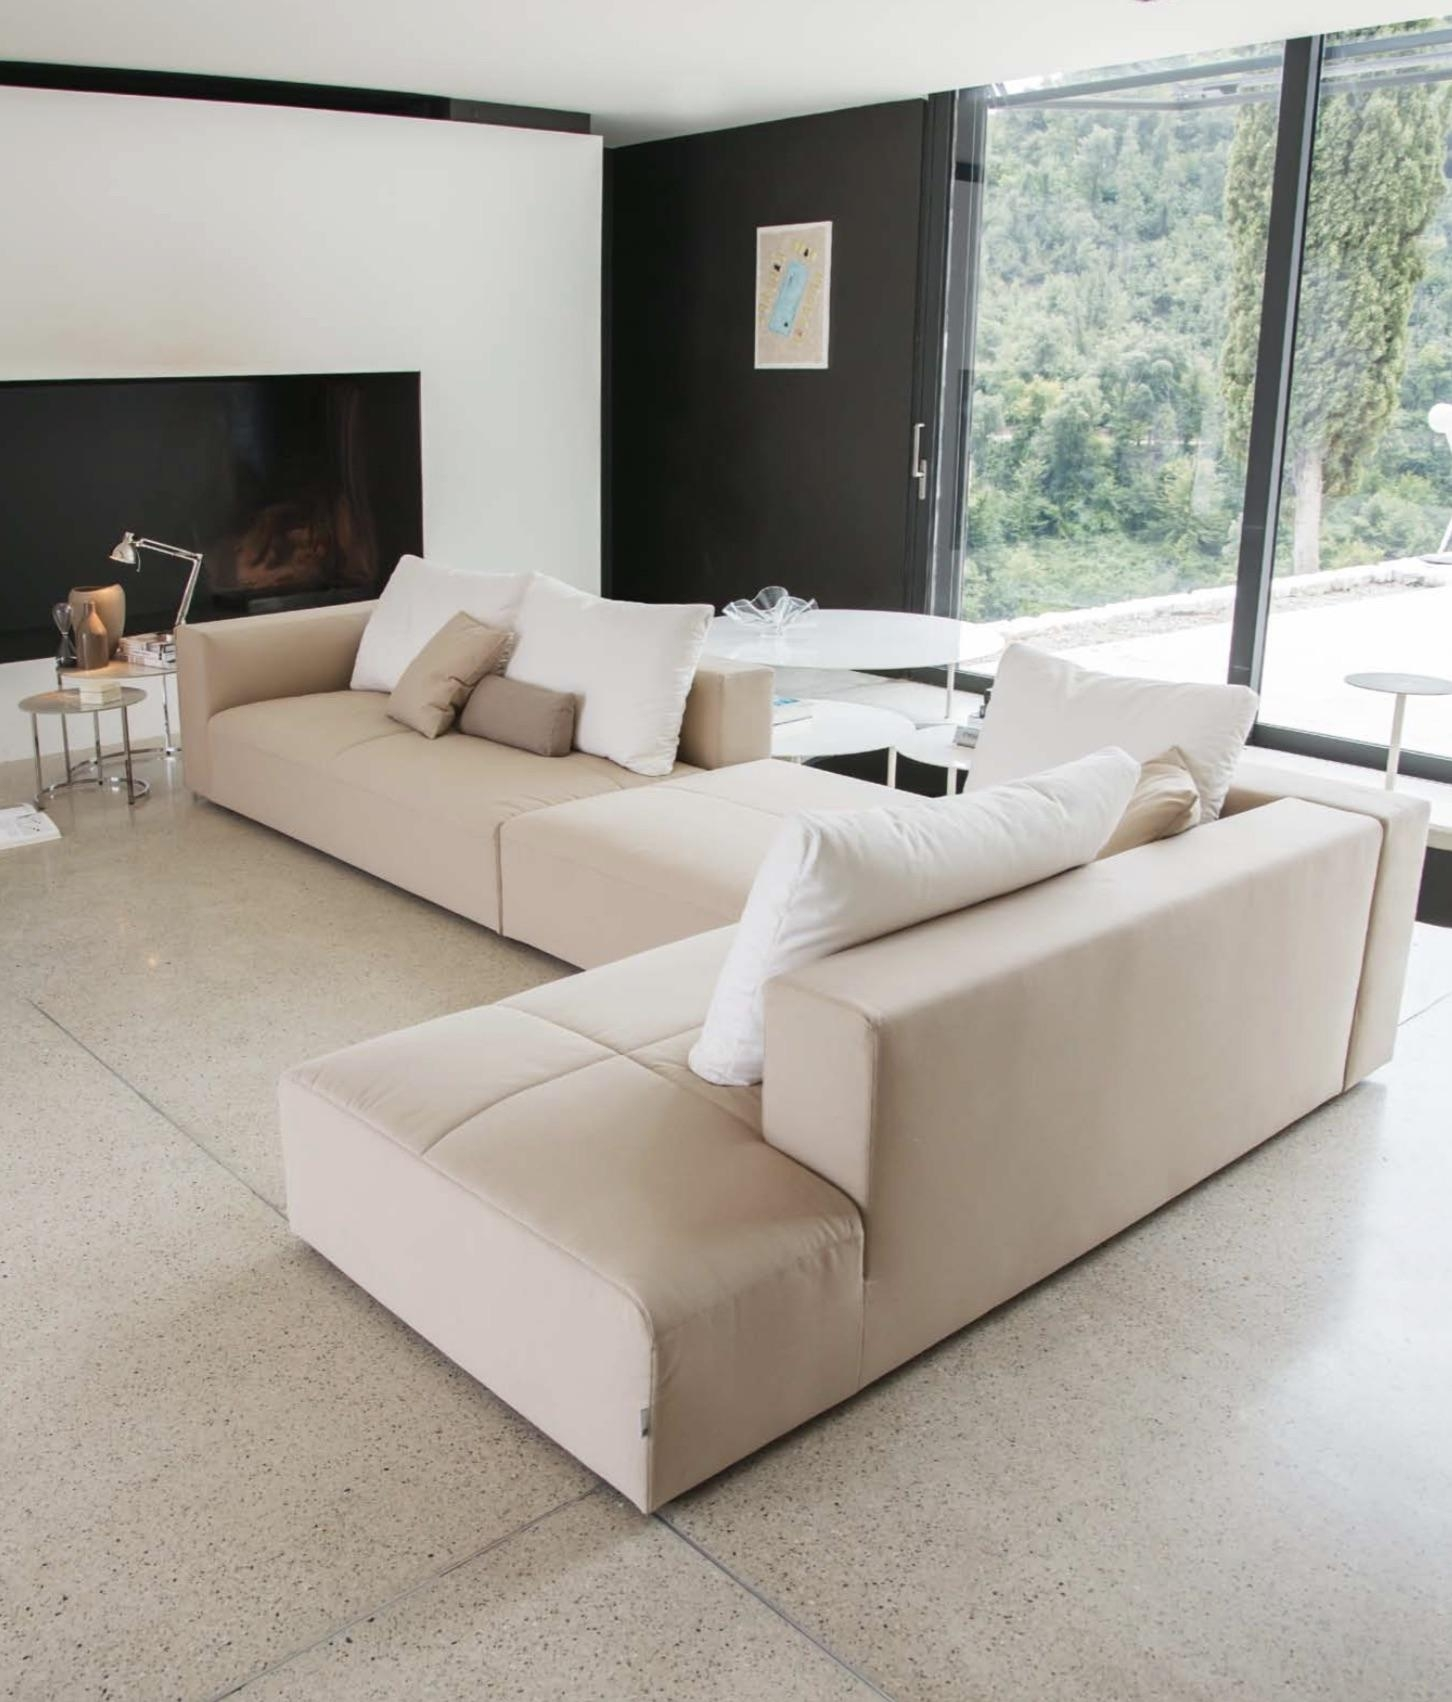 Italian Sectional Sofas | Momentoitalia Italian Modern Sofas With Down Sectional Sofa (View 10 of 15)